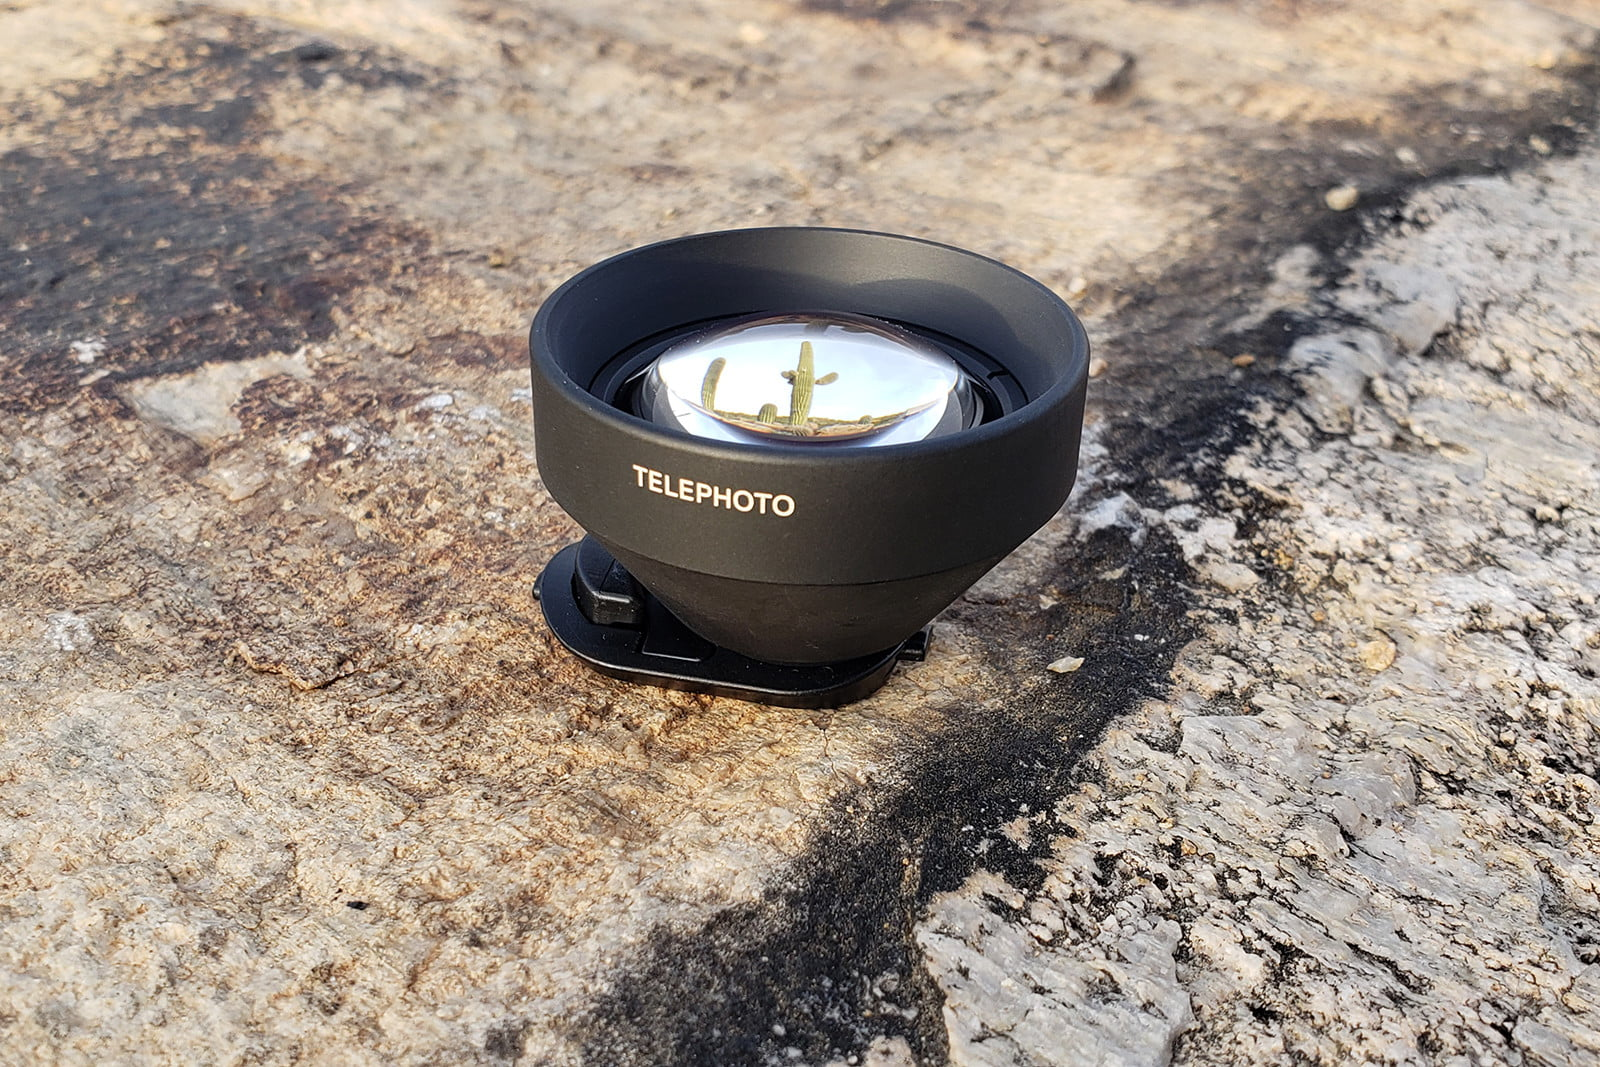 olloclip intro pro series launches telephoto featured